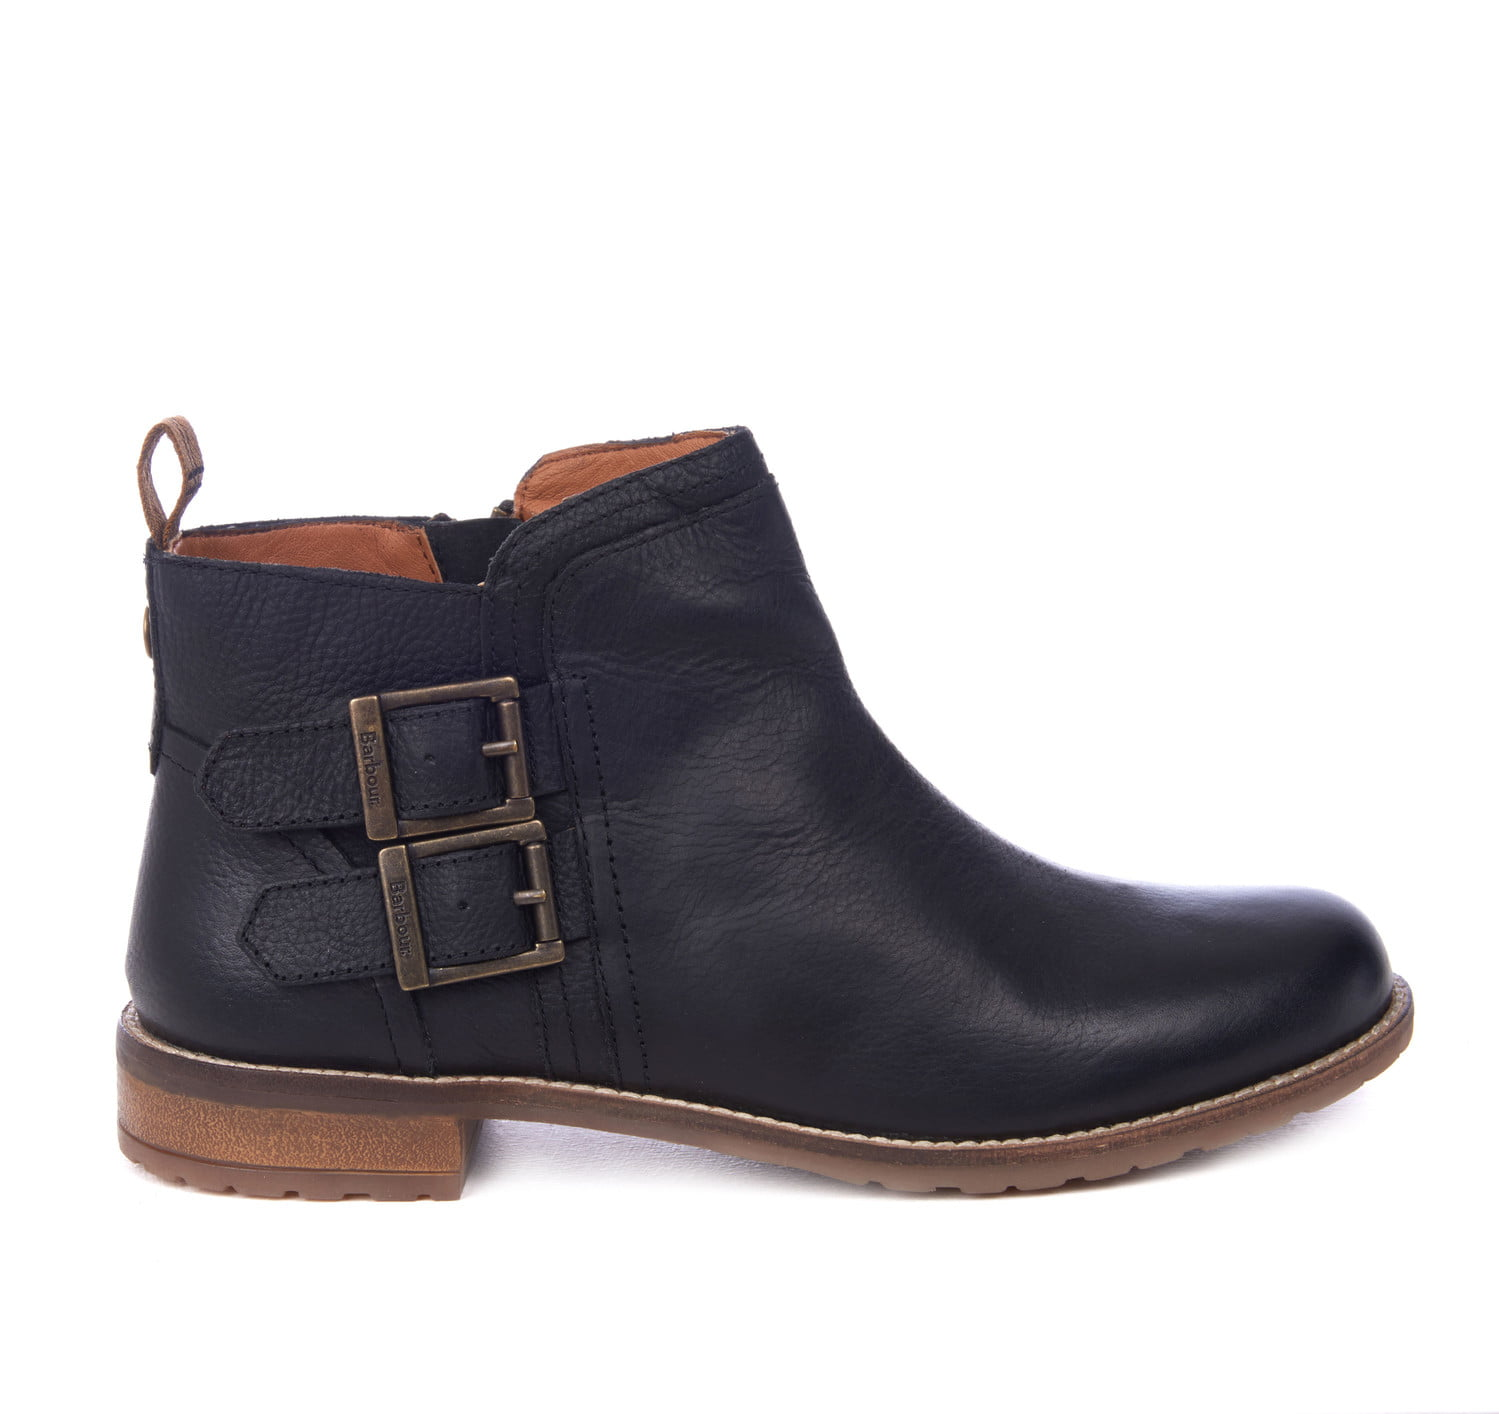 BARBOUR NEW SARAH BUCKLE ANKLE BOOT0212BK71_carryfwd_flat